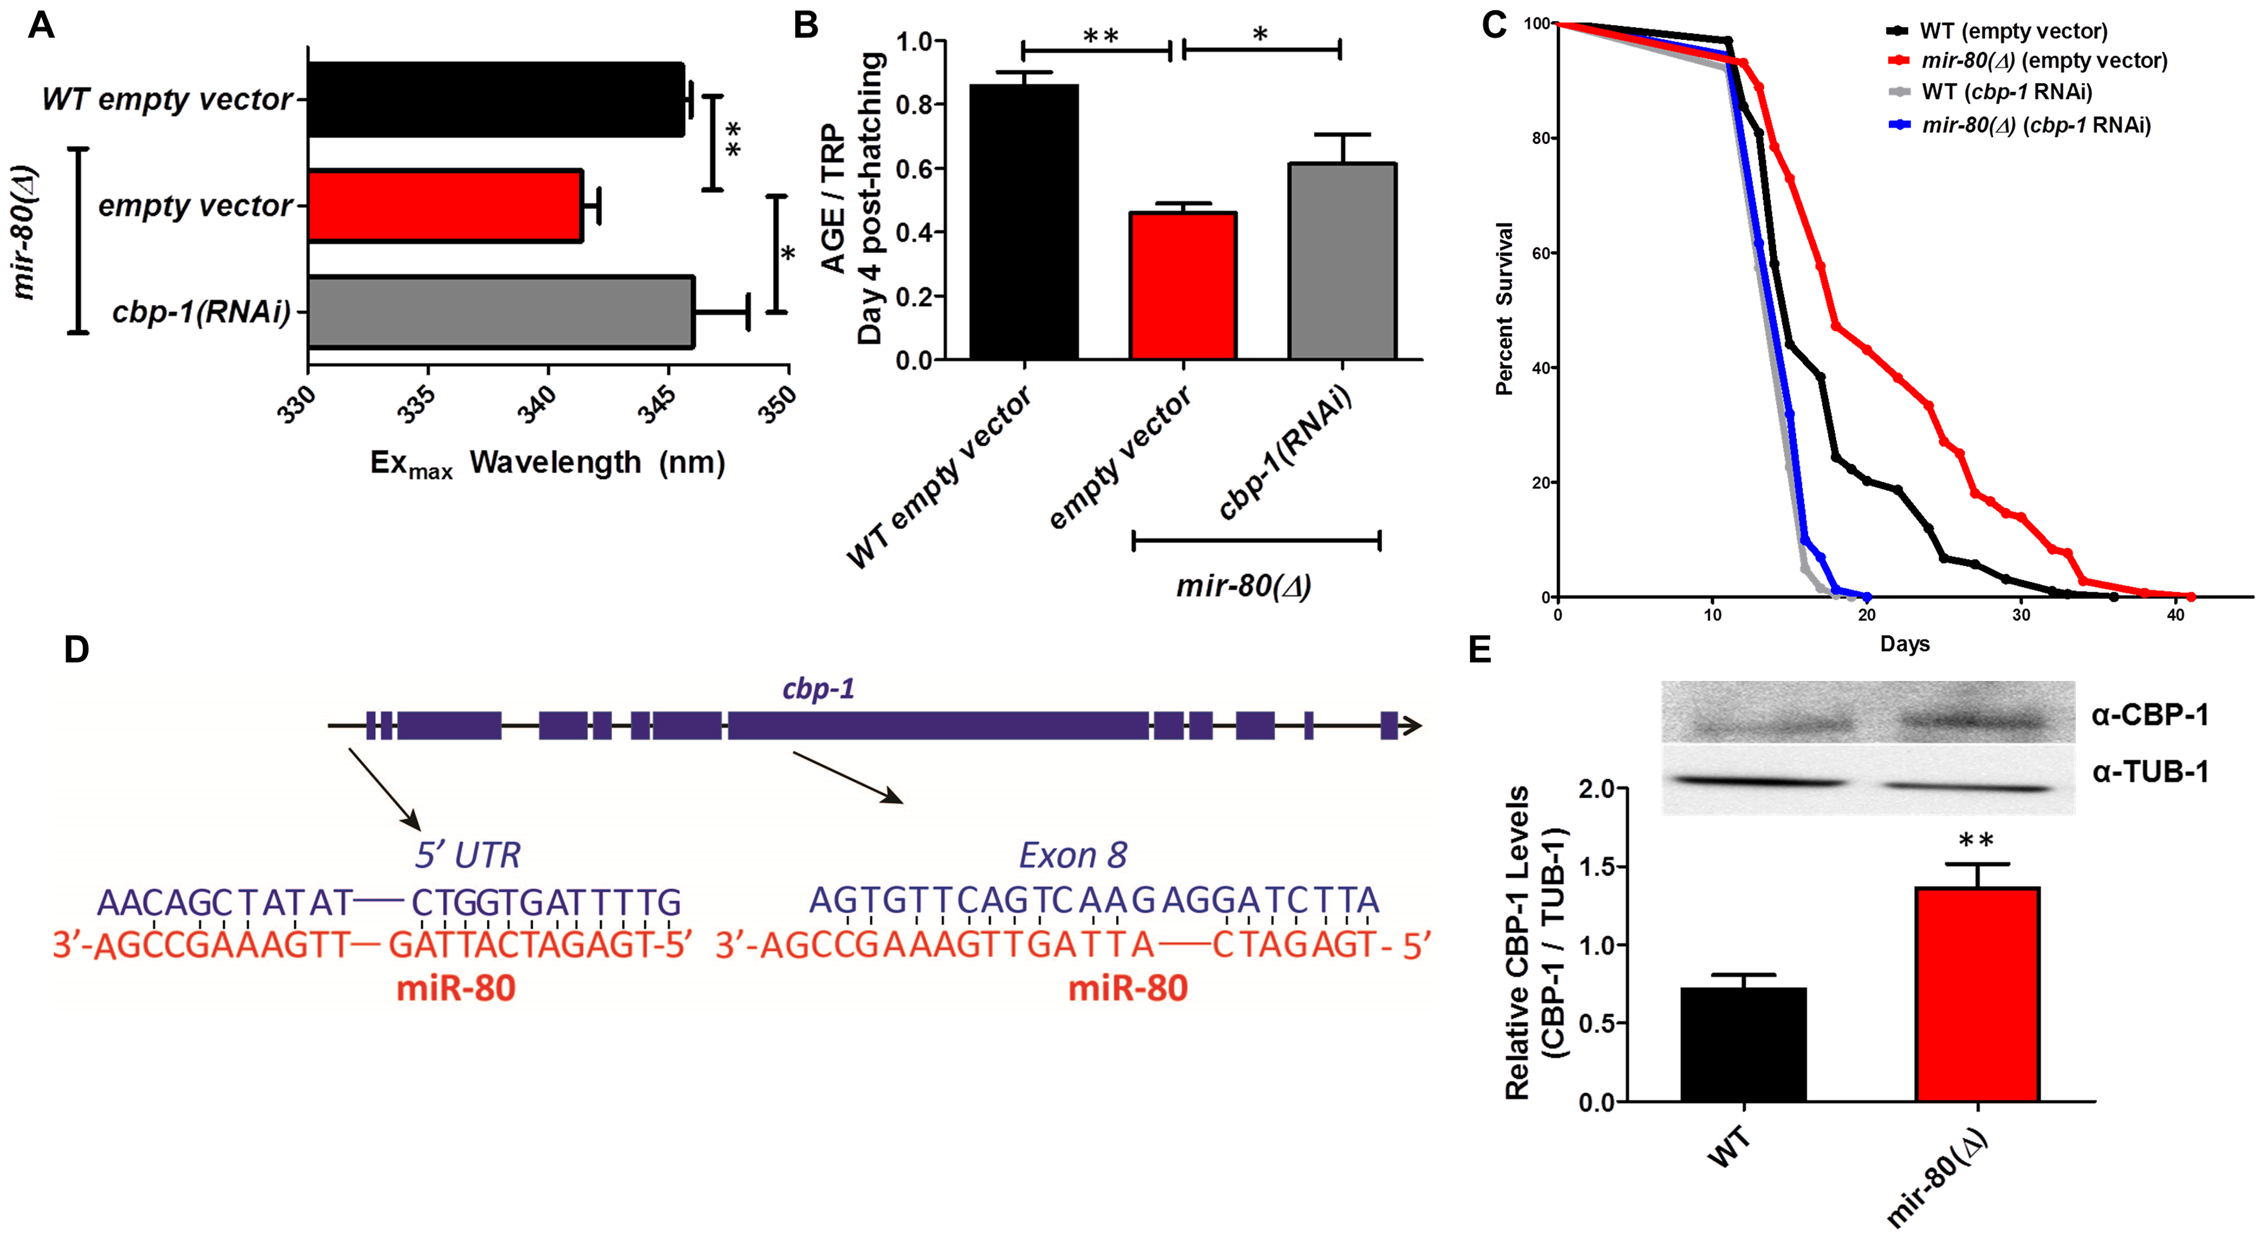 CBP-1 is critical for <i>mir-80</i>(Δ) healthspan benefits, and is a candidate direct binding target of miR-80.